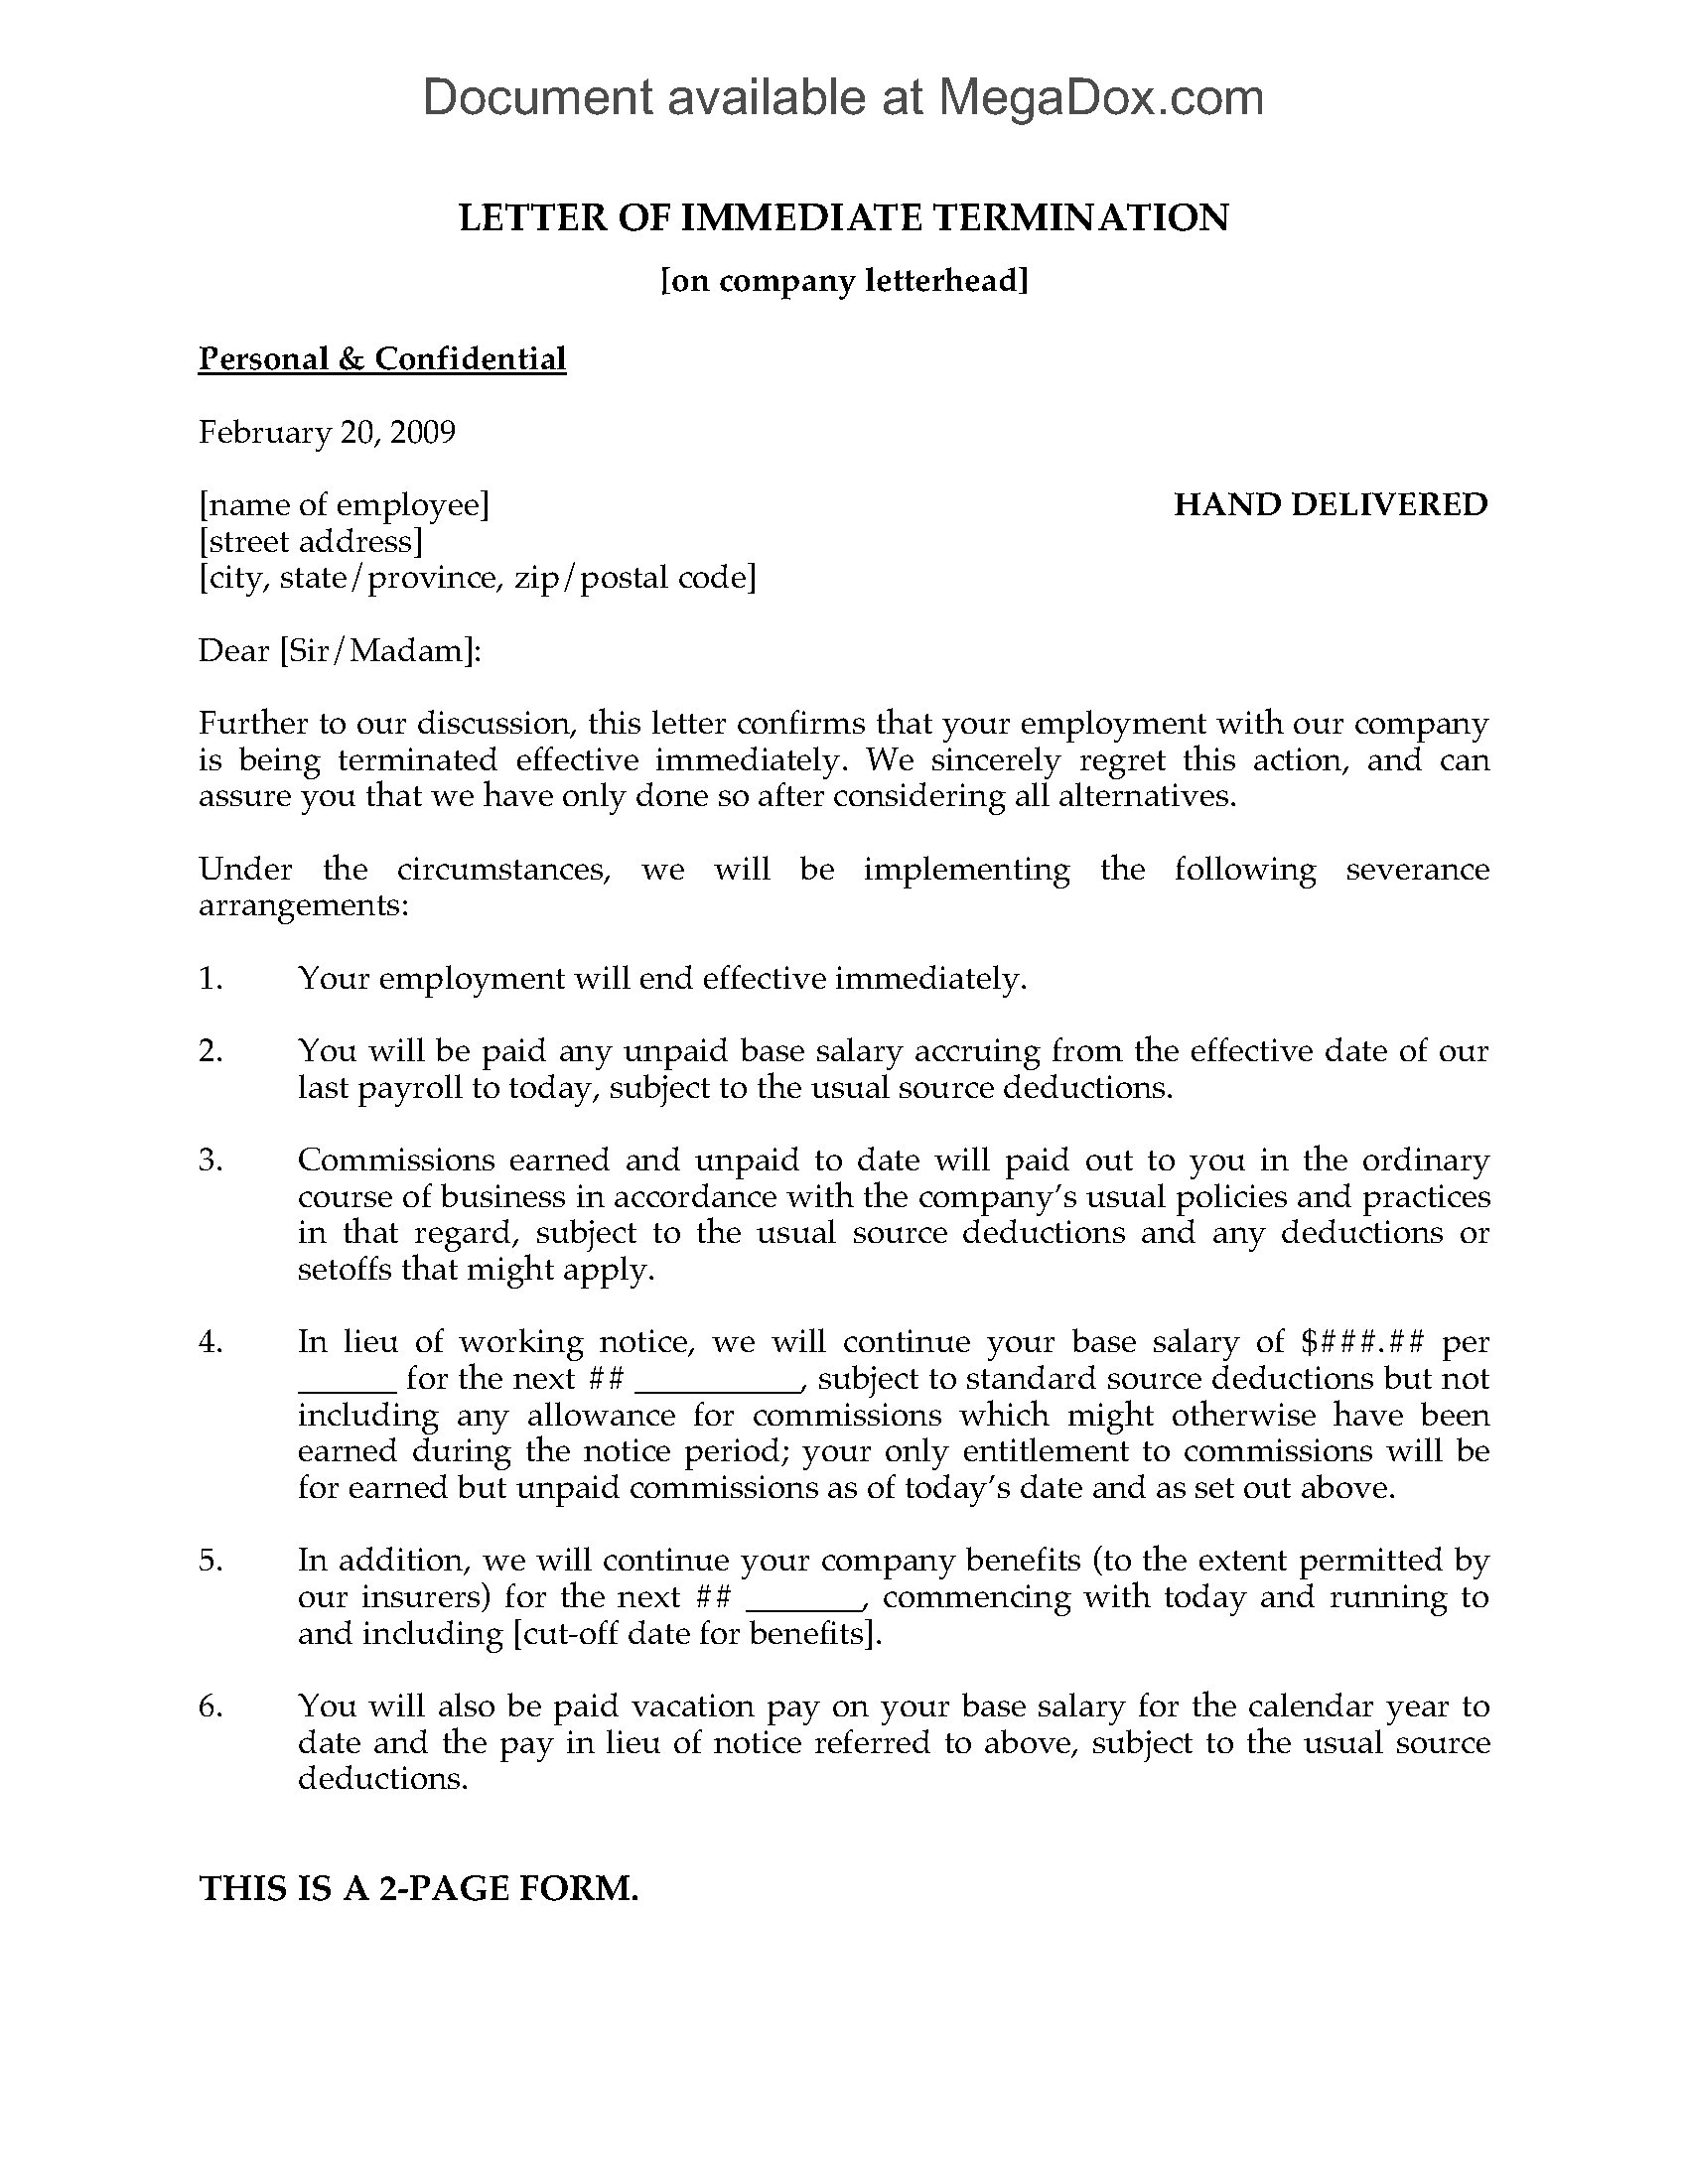 Letter Of Immediate Termination Of Employment